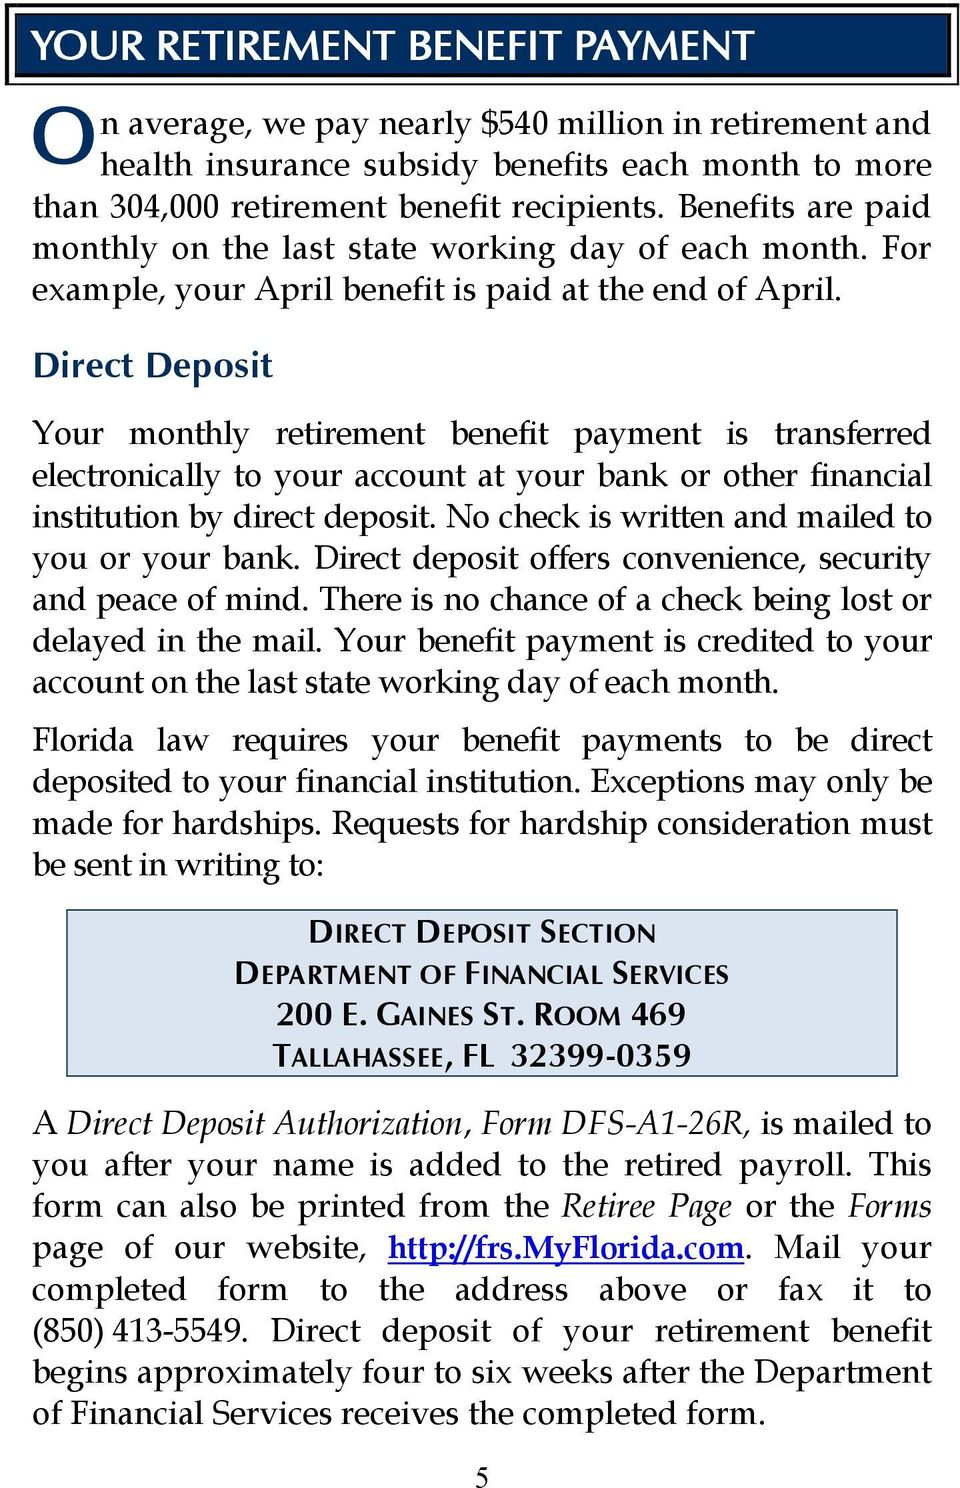 Direct Deposit Your monthly retirement benefit payment is transferred electronically to your account at your bank or other financial institution by direct deposit.